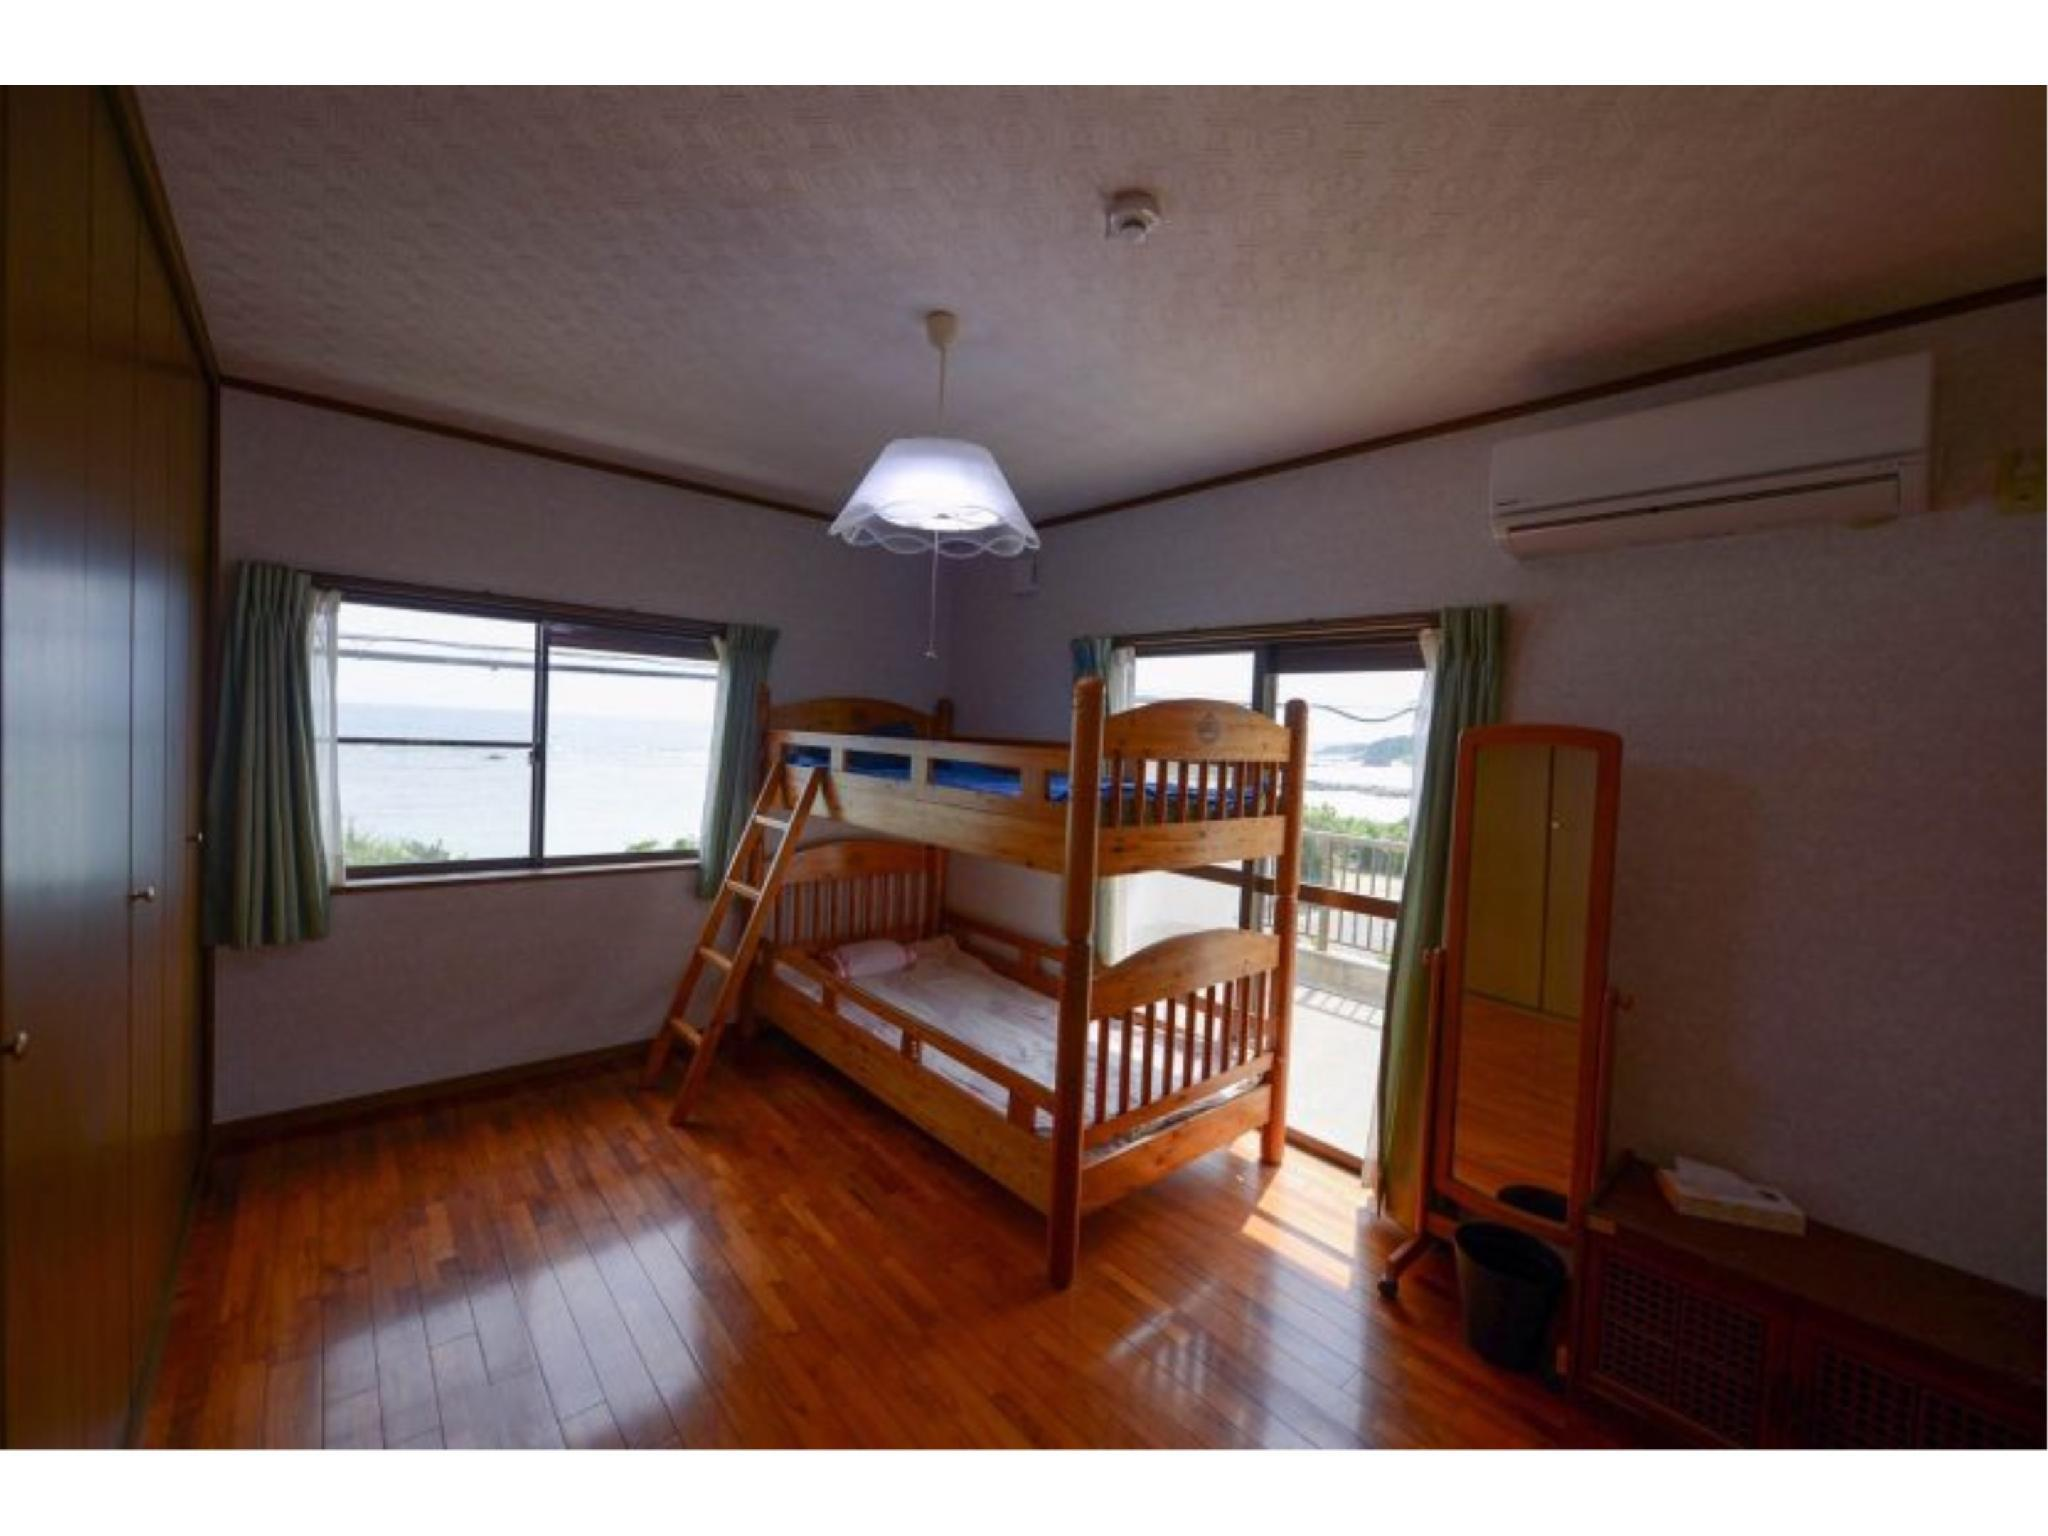 침대 객실(2단베드) (Western-style Room (Bunk Beds))